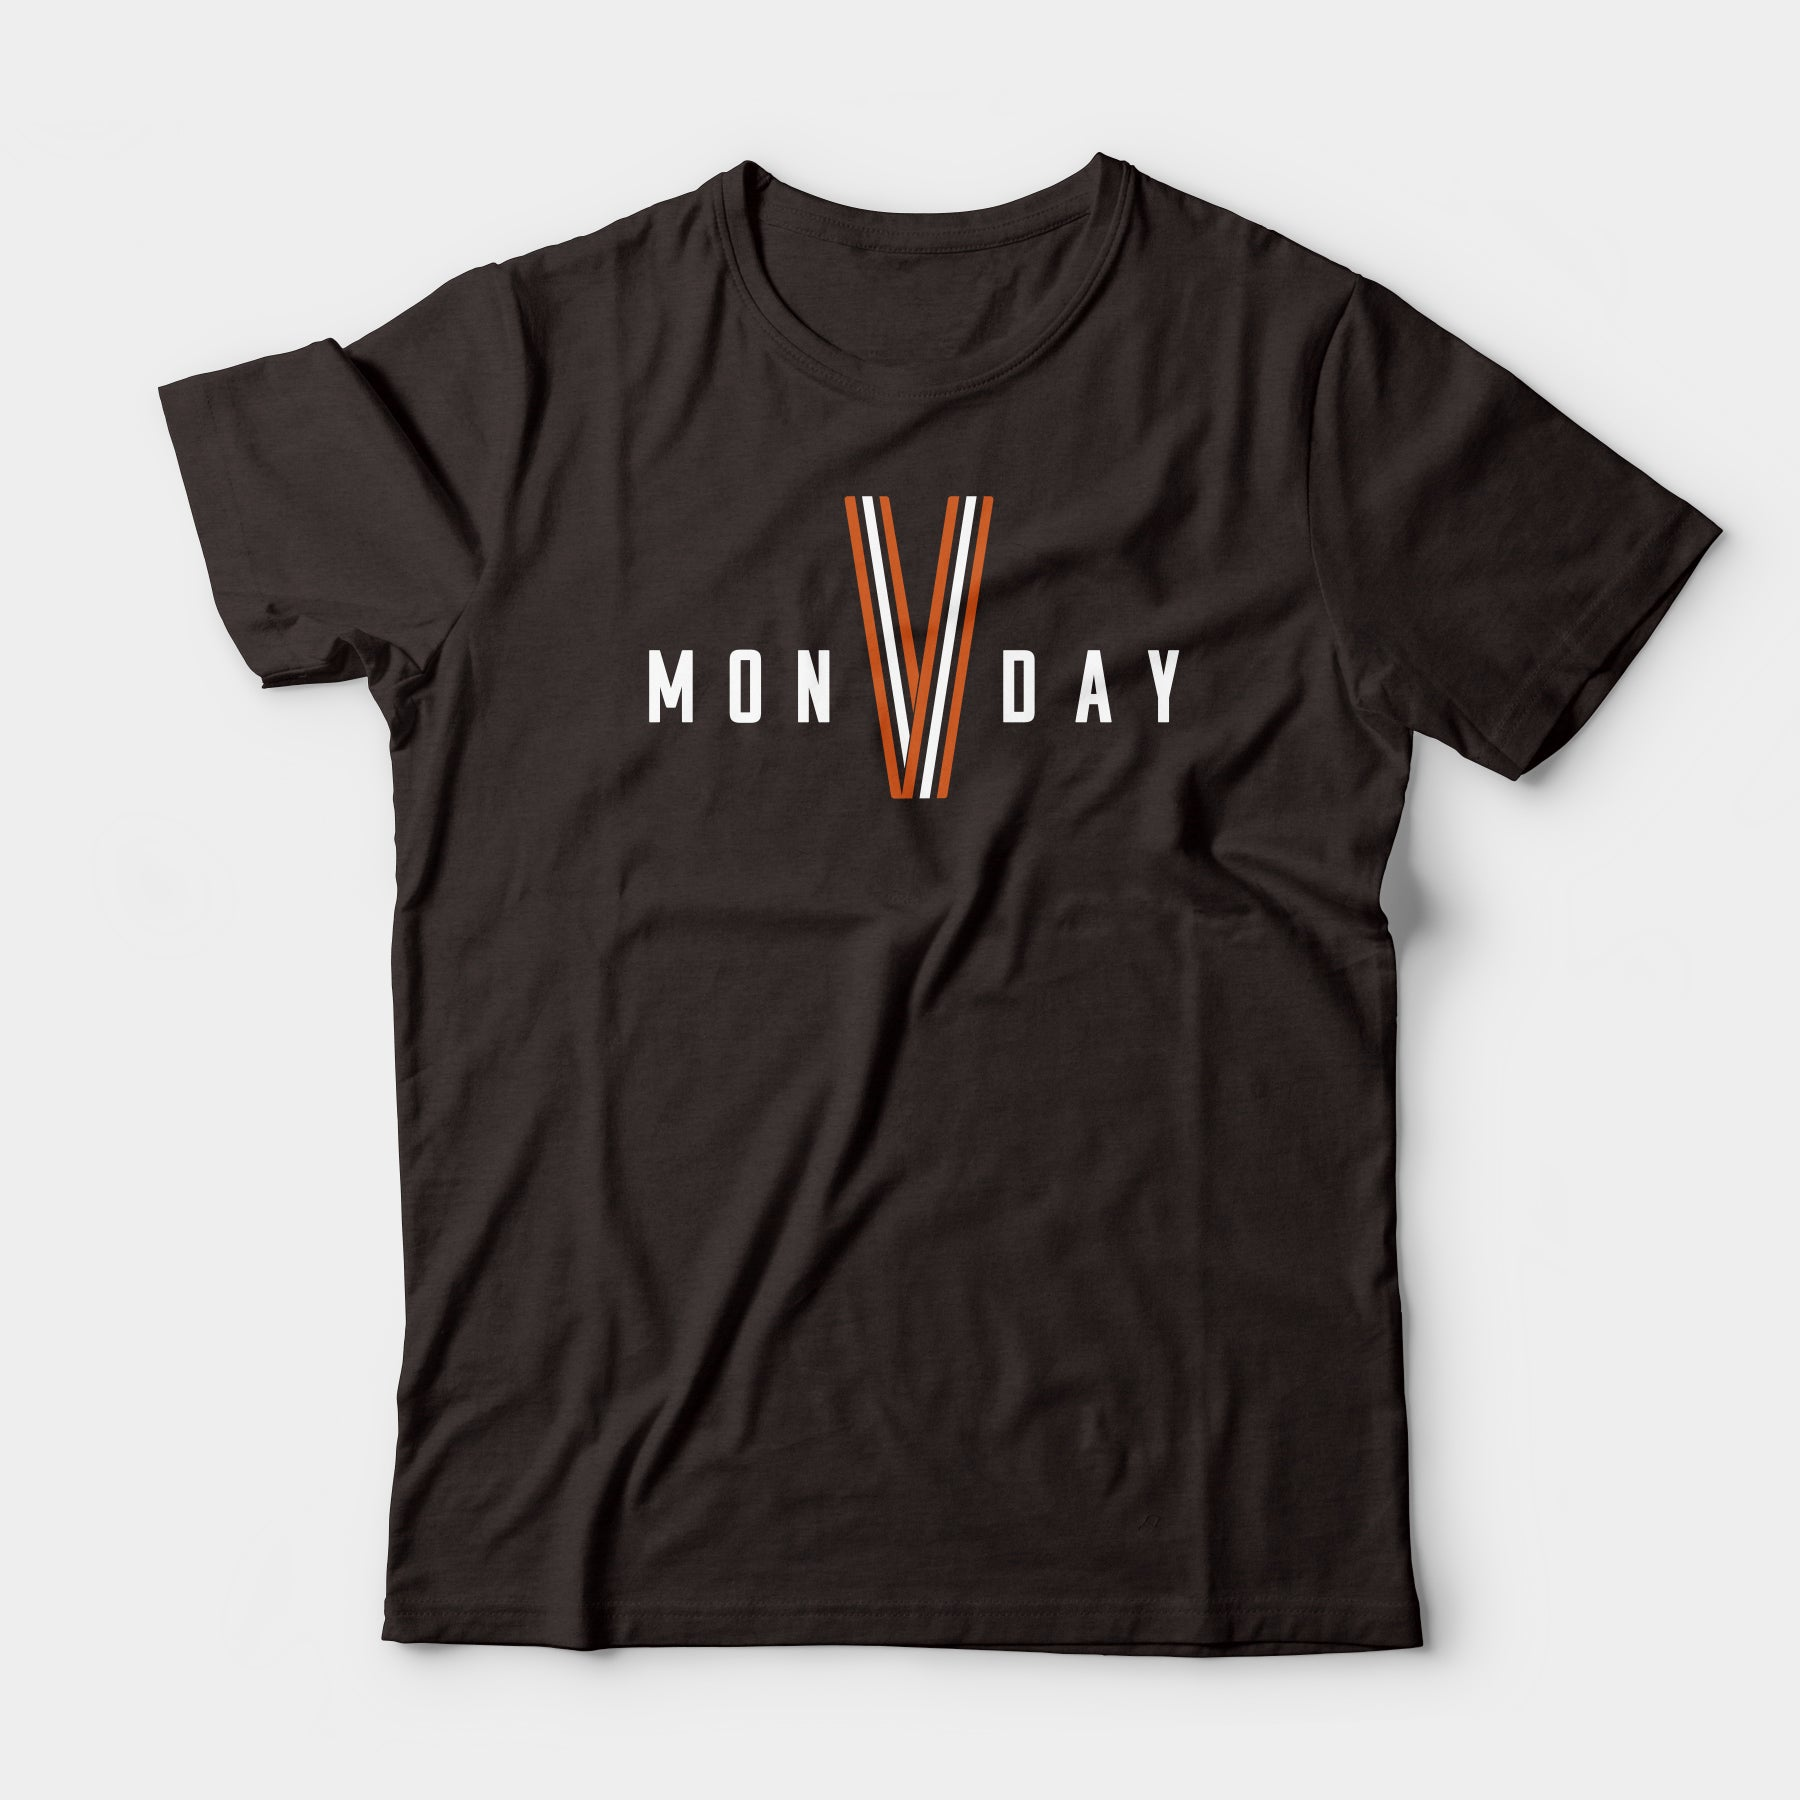 Victory Monday Tee, Brown